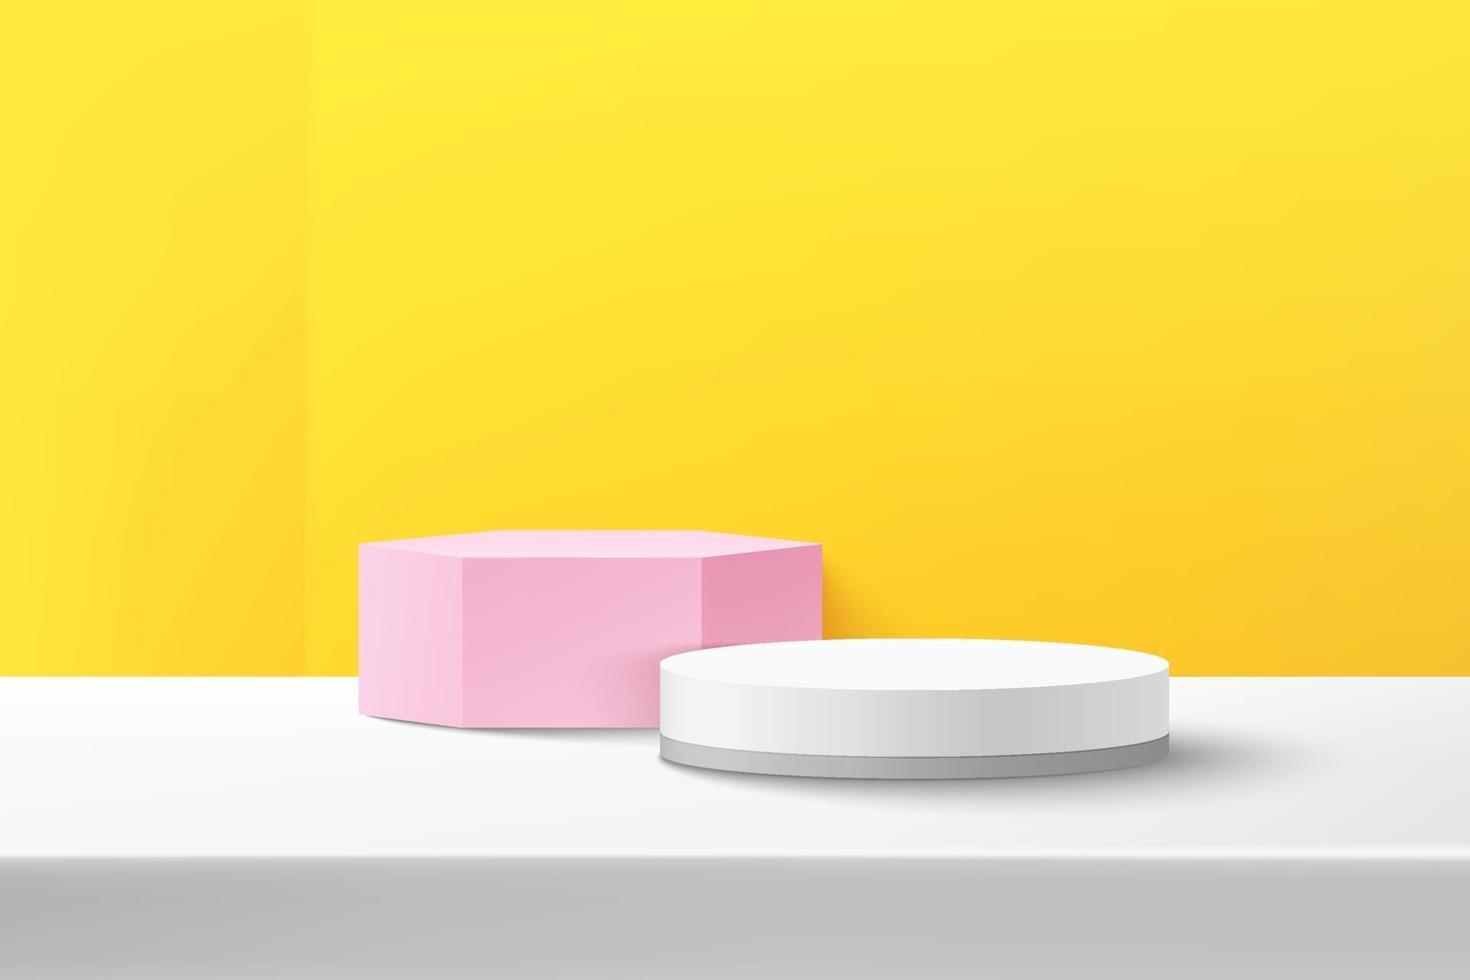 Abstract vector rendering 3d shape for advertising product display with copy space. Modern white and pink geometric podium with white and yellow empty room background. Minimal studio room concept.